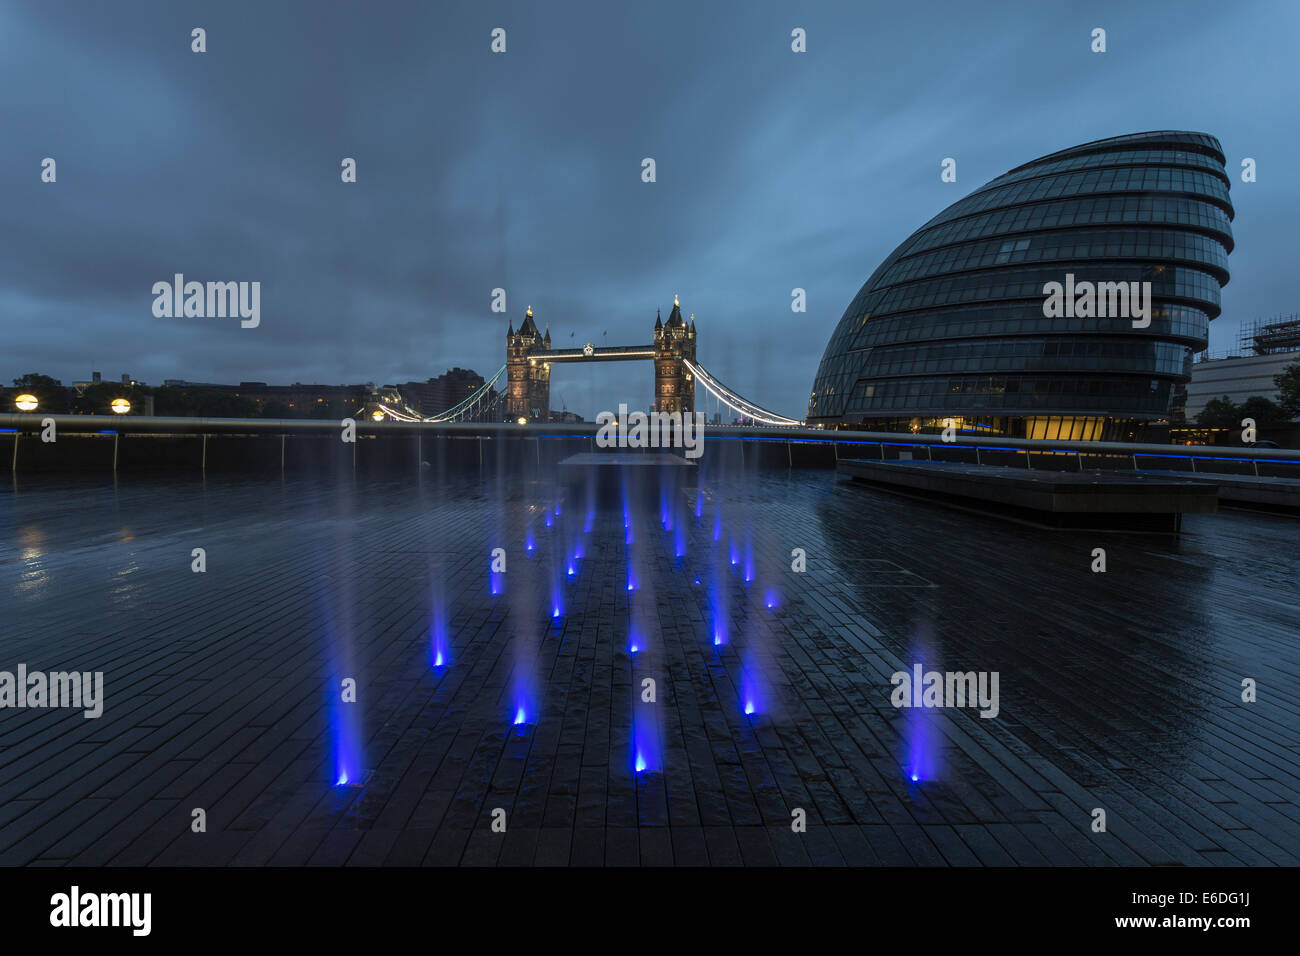 Illuminated fountain in the early morning light with City Hall and Tower Bridge, London, England, United Kingdom Stock Photo